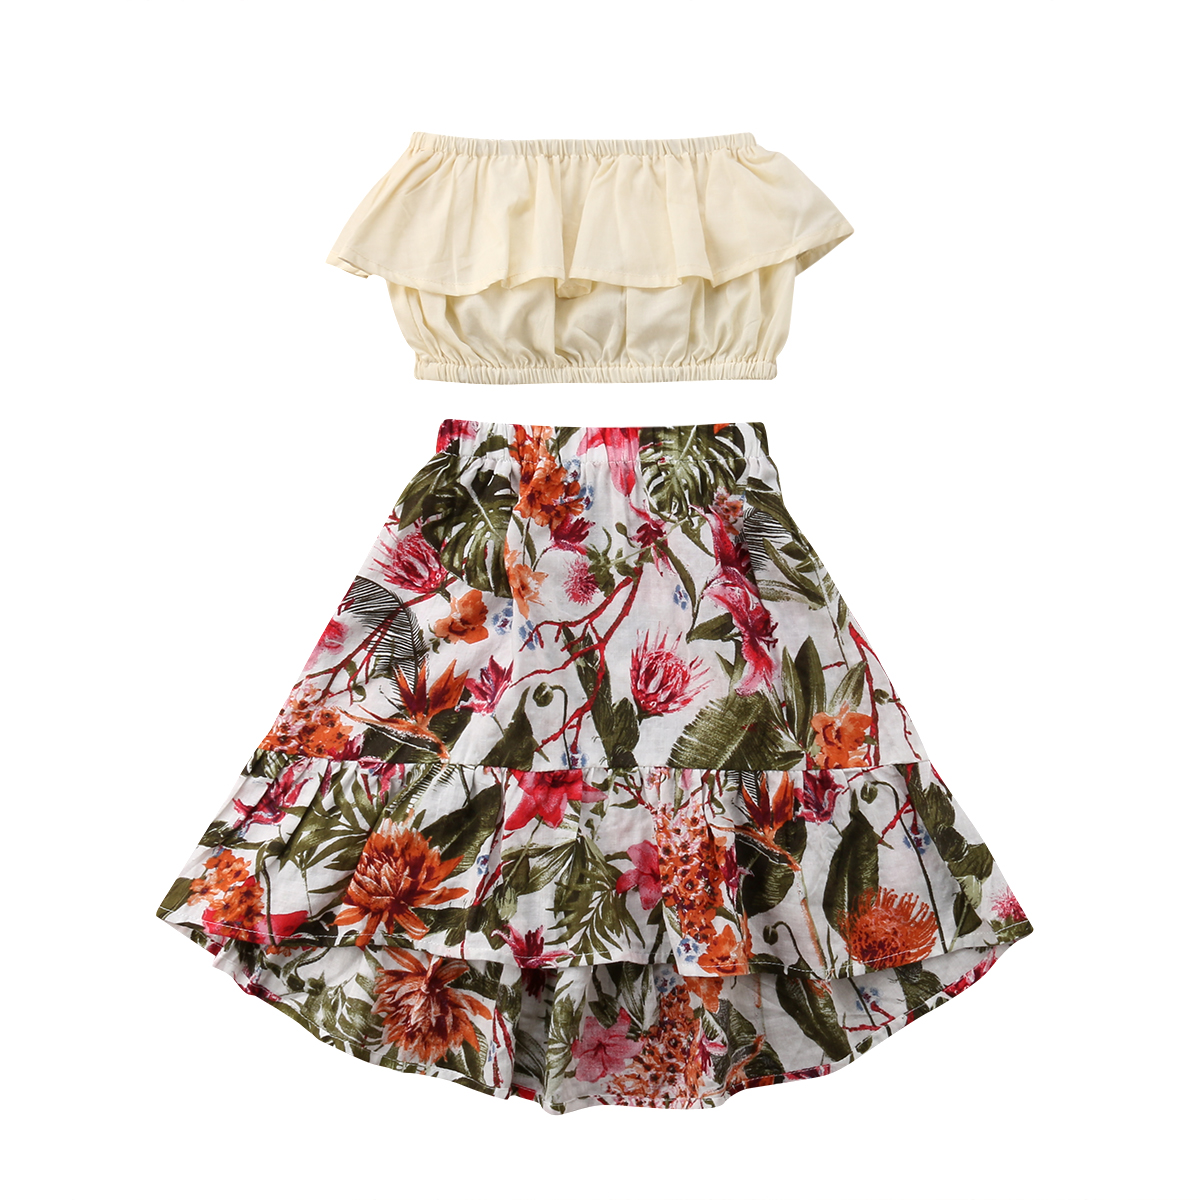 2pcs Toddler Infant Baby Girls Clothes Off Shoulder Ruffle Bob Tube Top Floral Maxi Skirt Kids Summer Clothes Baby Girl 1-7T цена